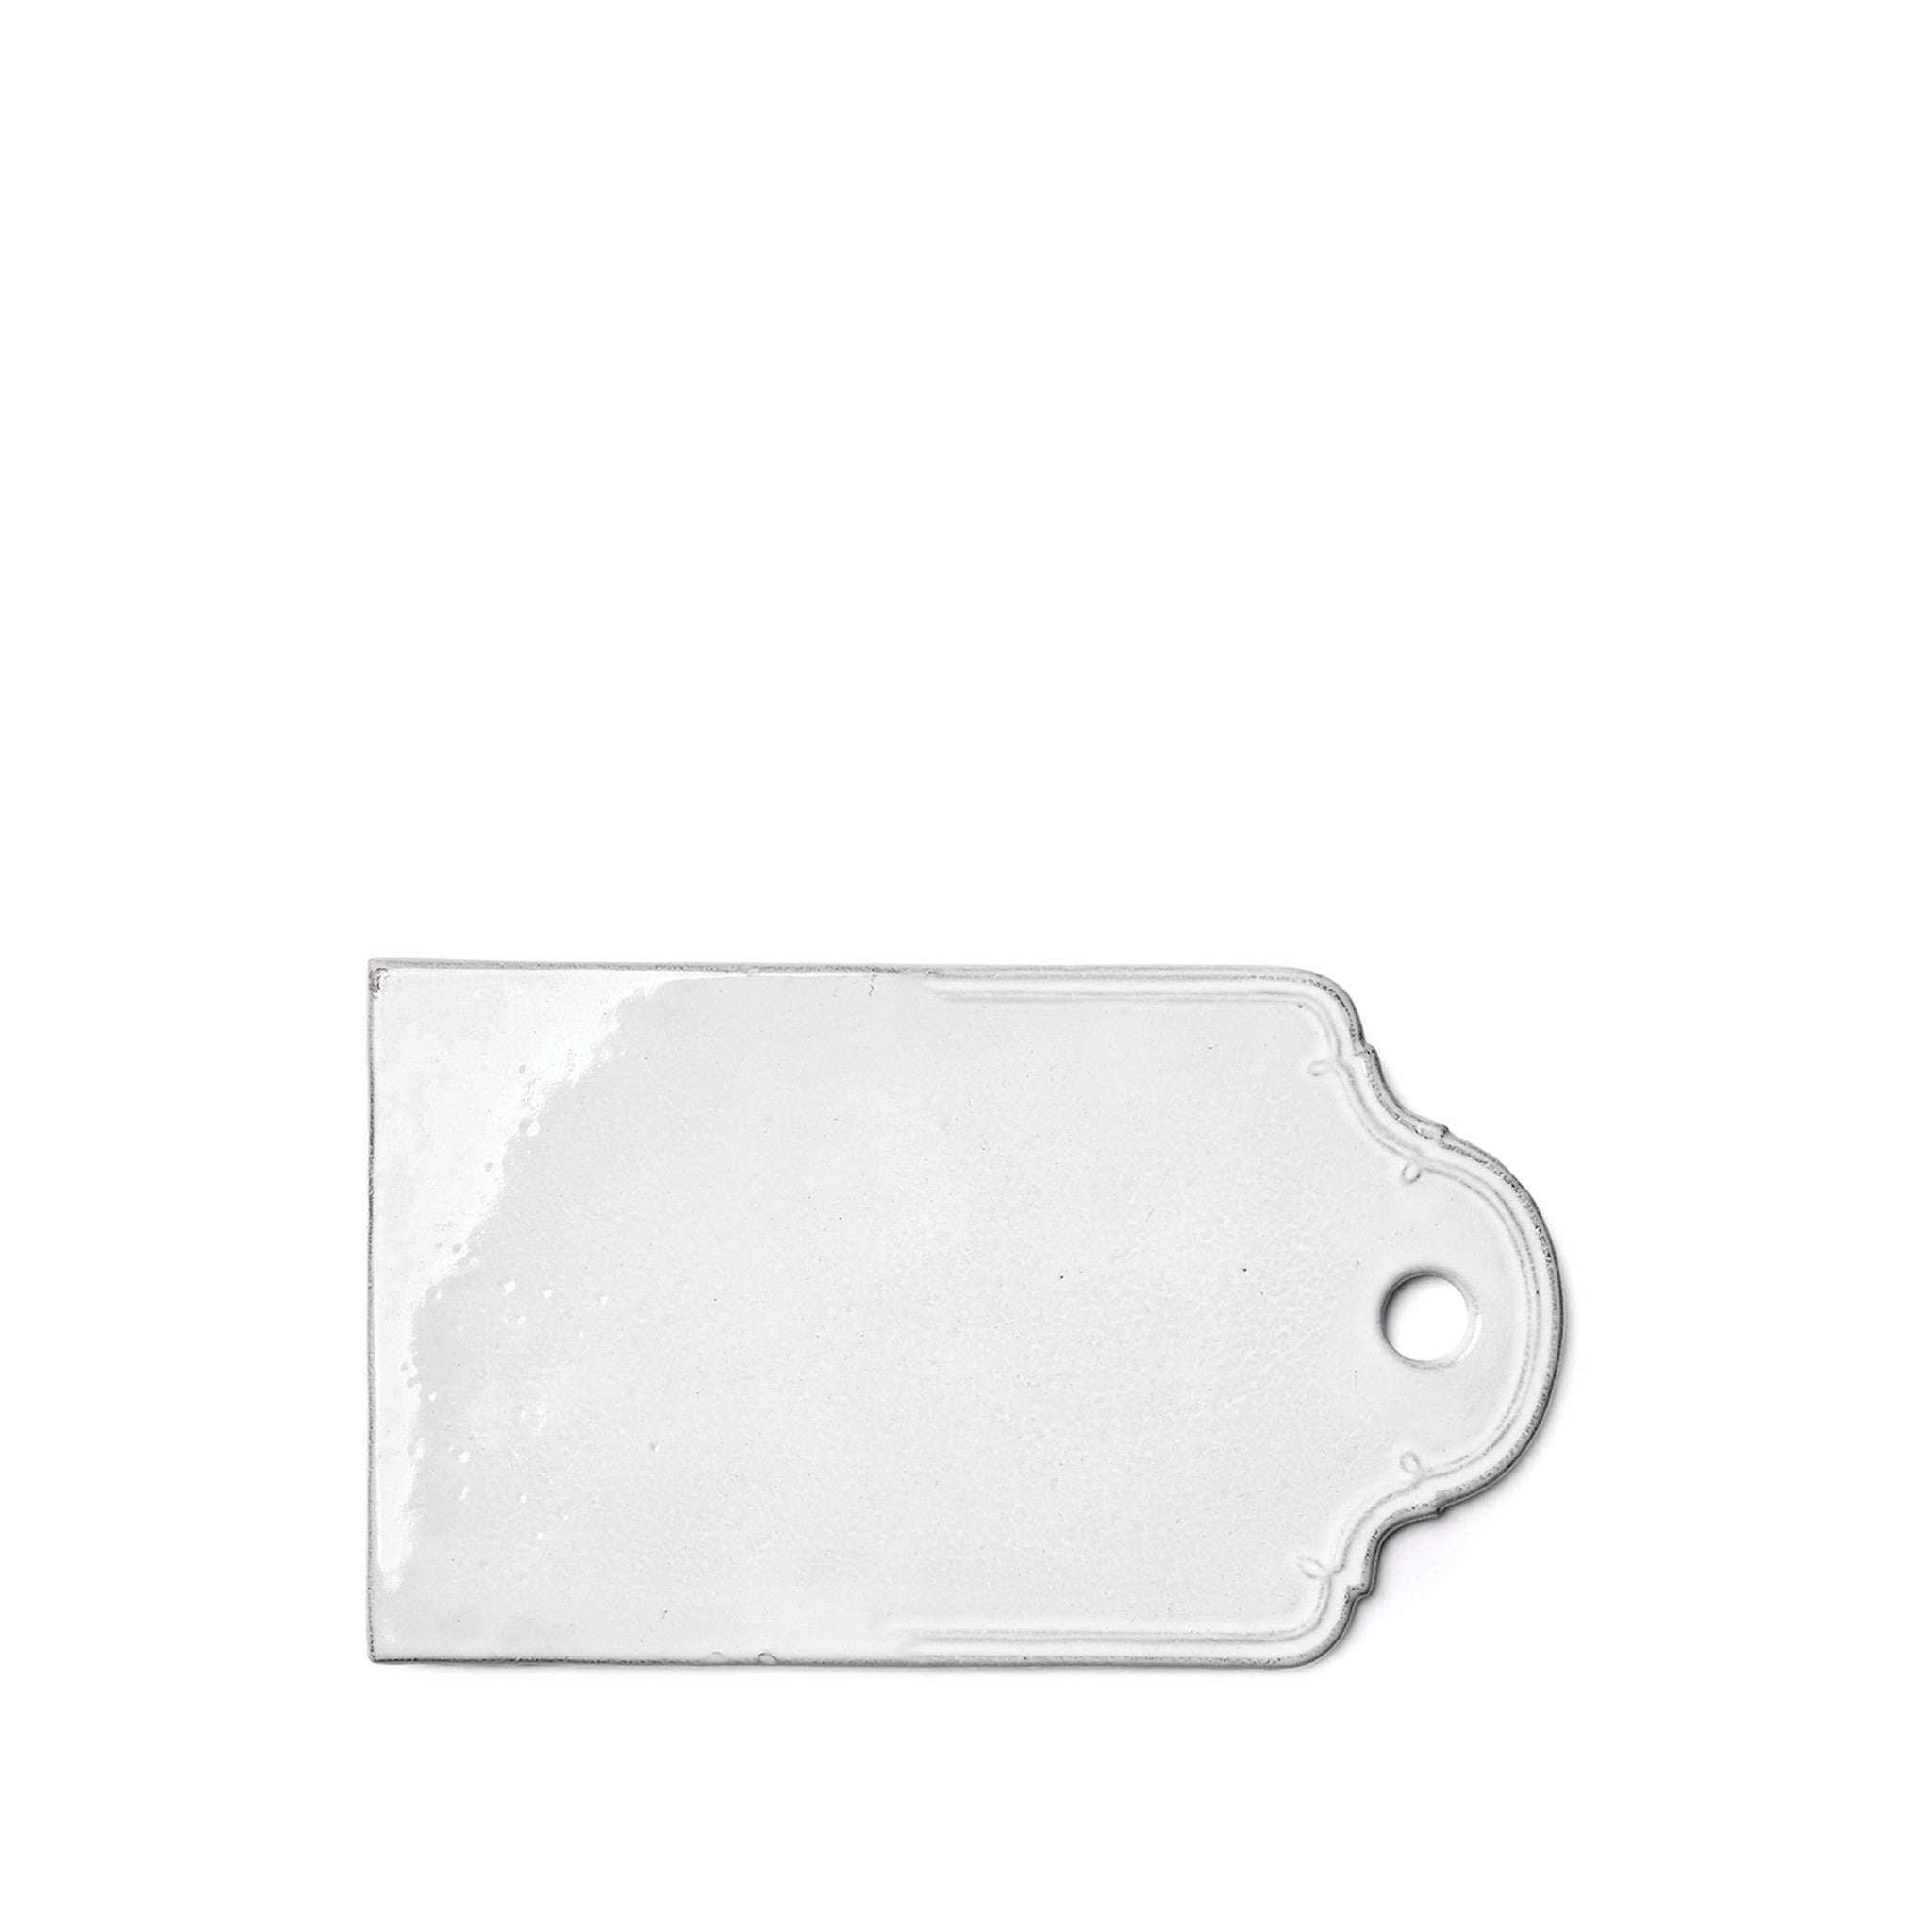 Colbert Cutting Board 1 by Astier de Villatte